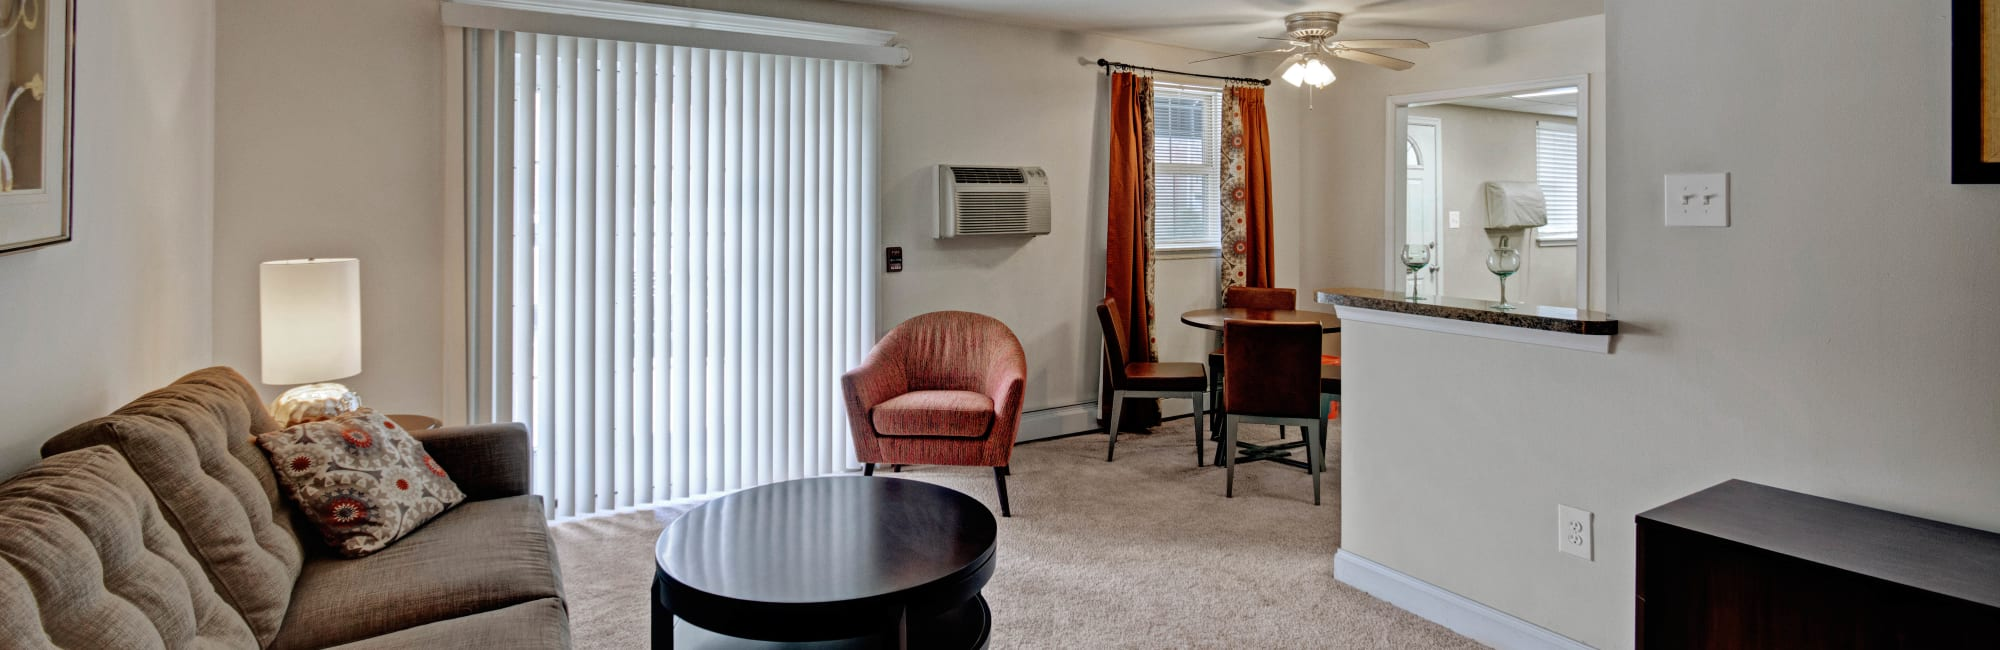 Apartments at Ridley Brook Apartments in Folsom, Pennsylvania